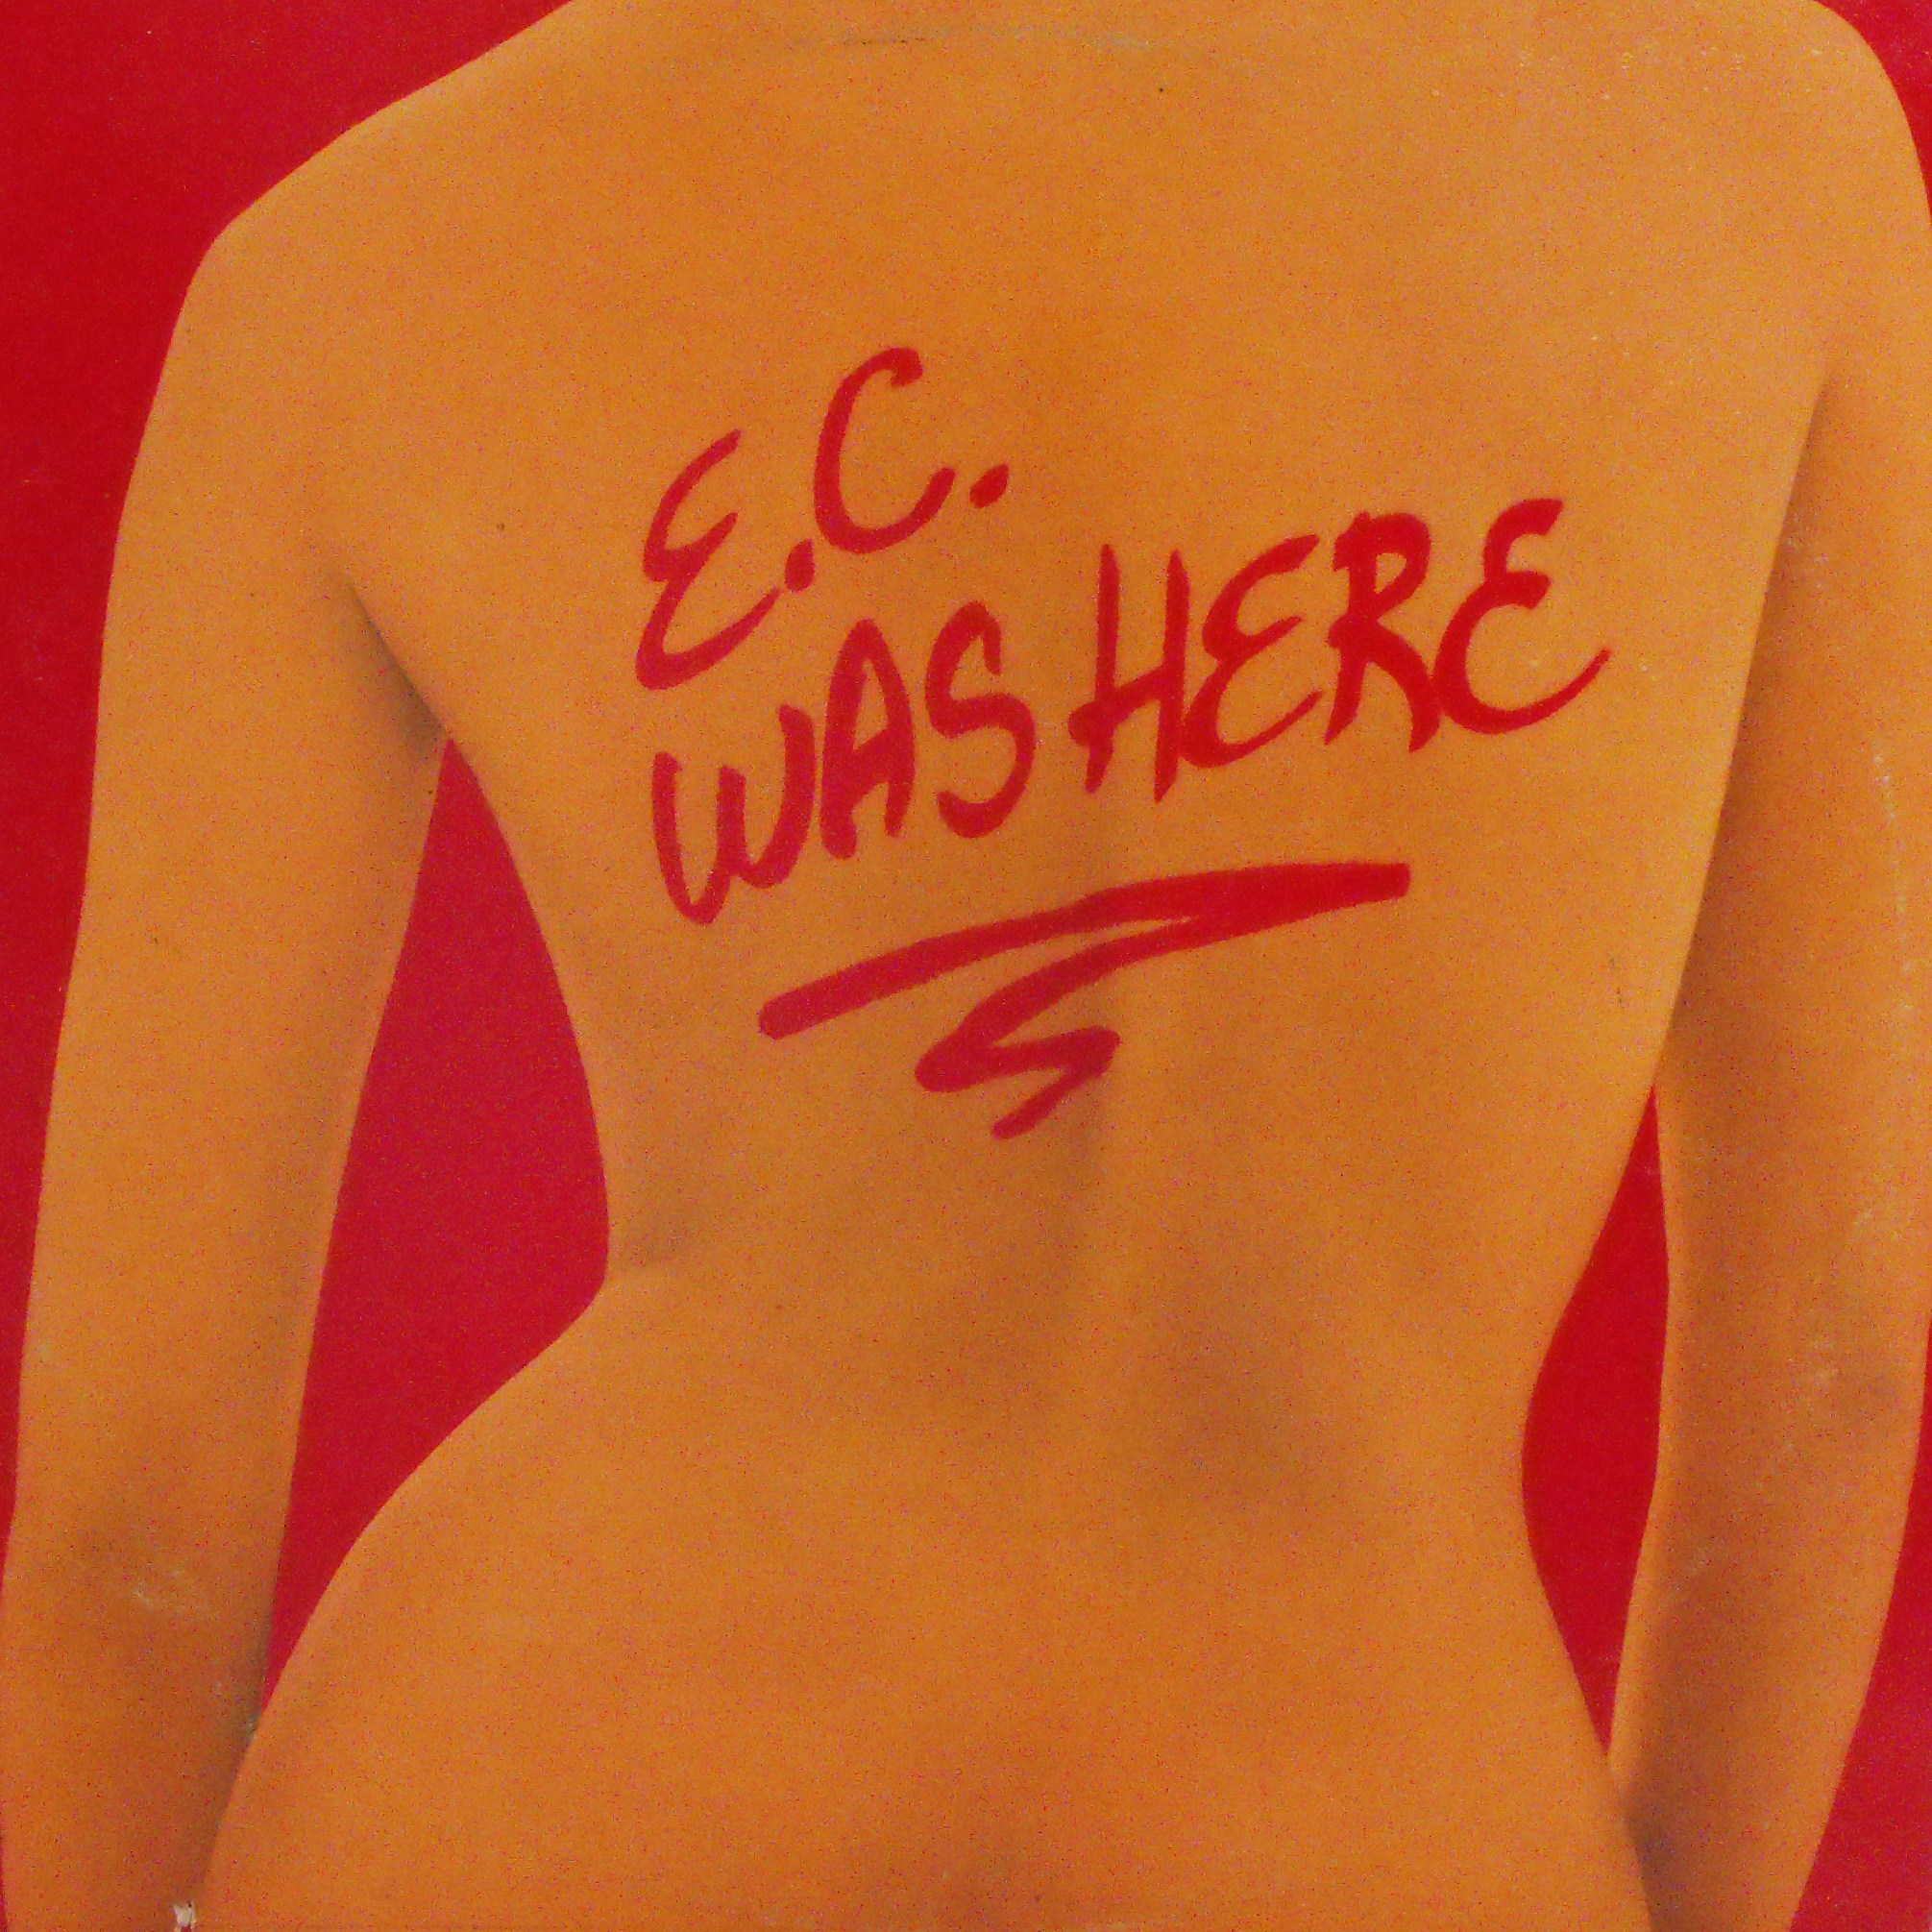 eric-clapton-1975-ec-was-here